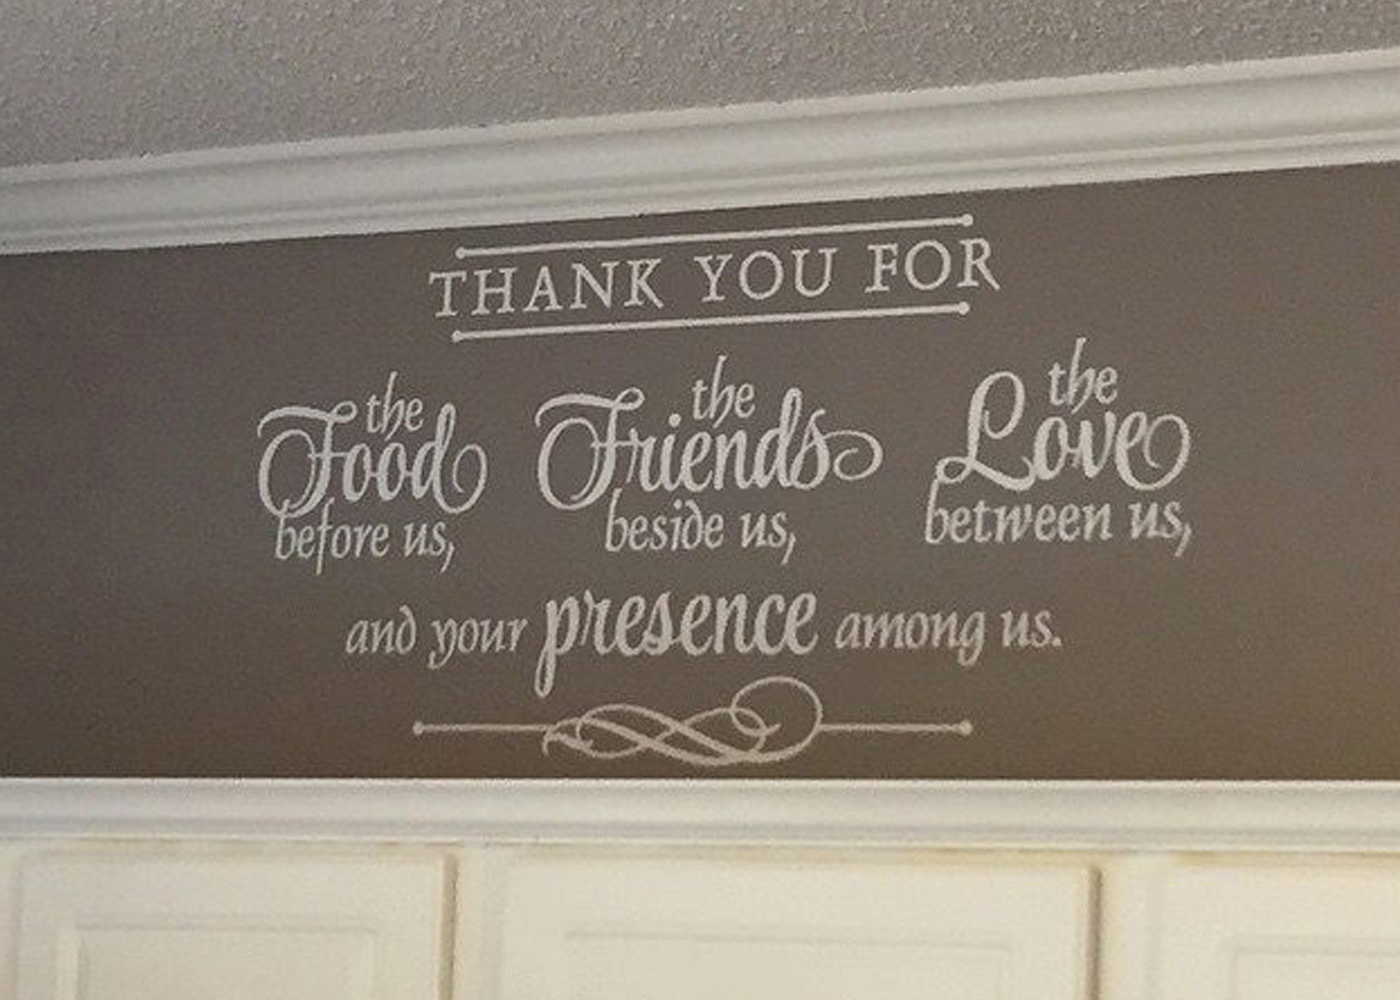 da012-f-thank-you-vinyl-wall-decal-quote-warm2.jpg